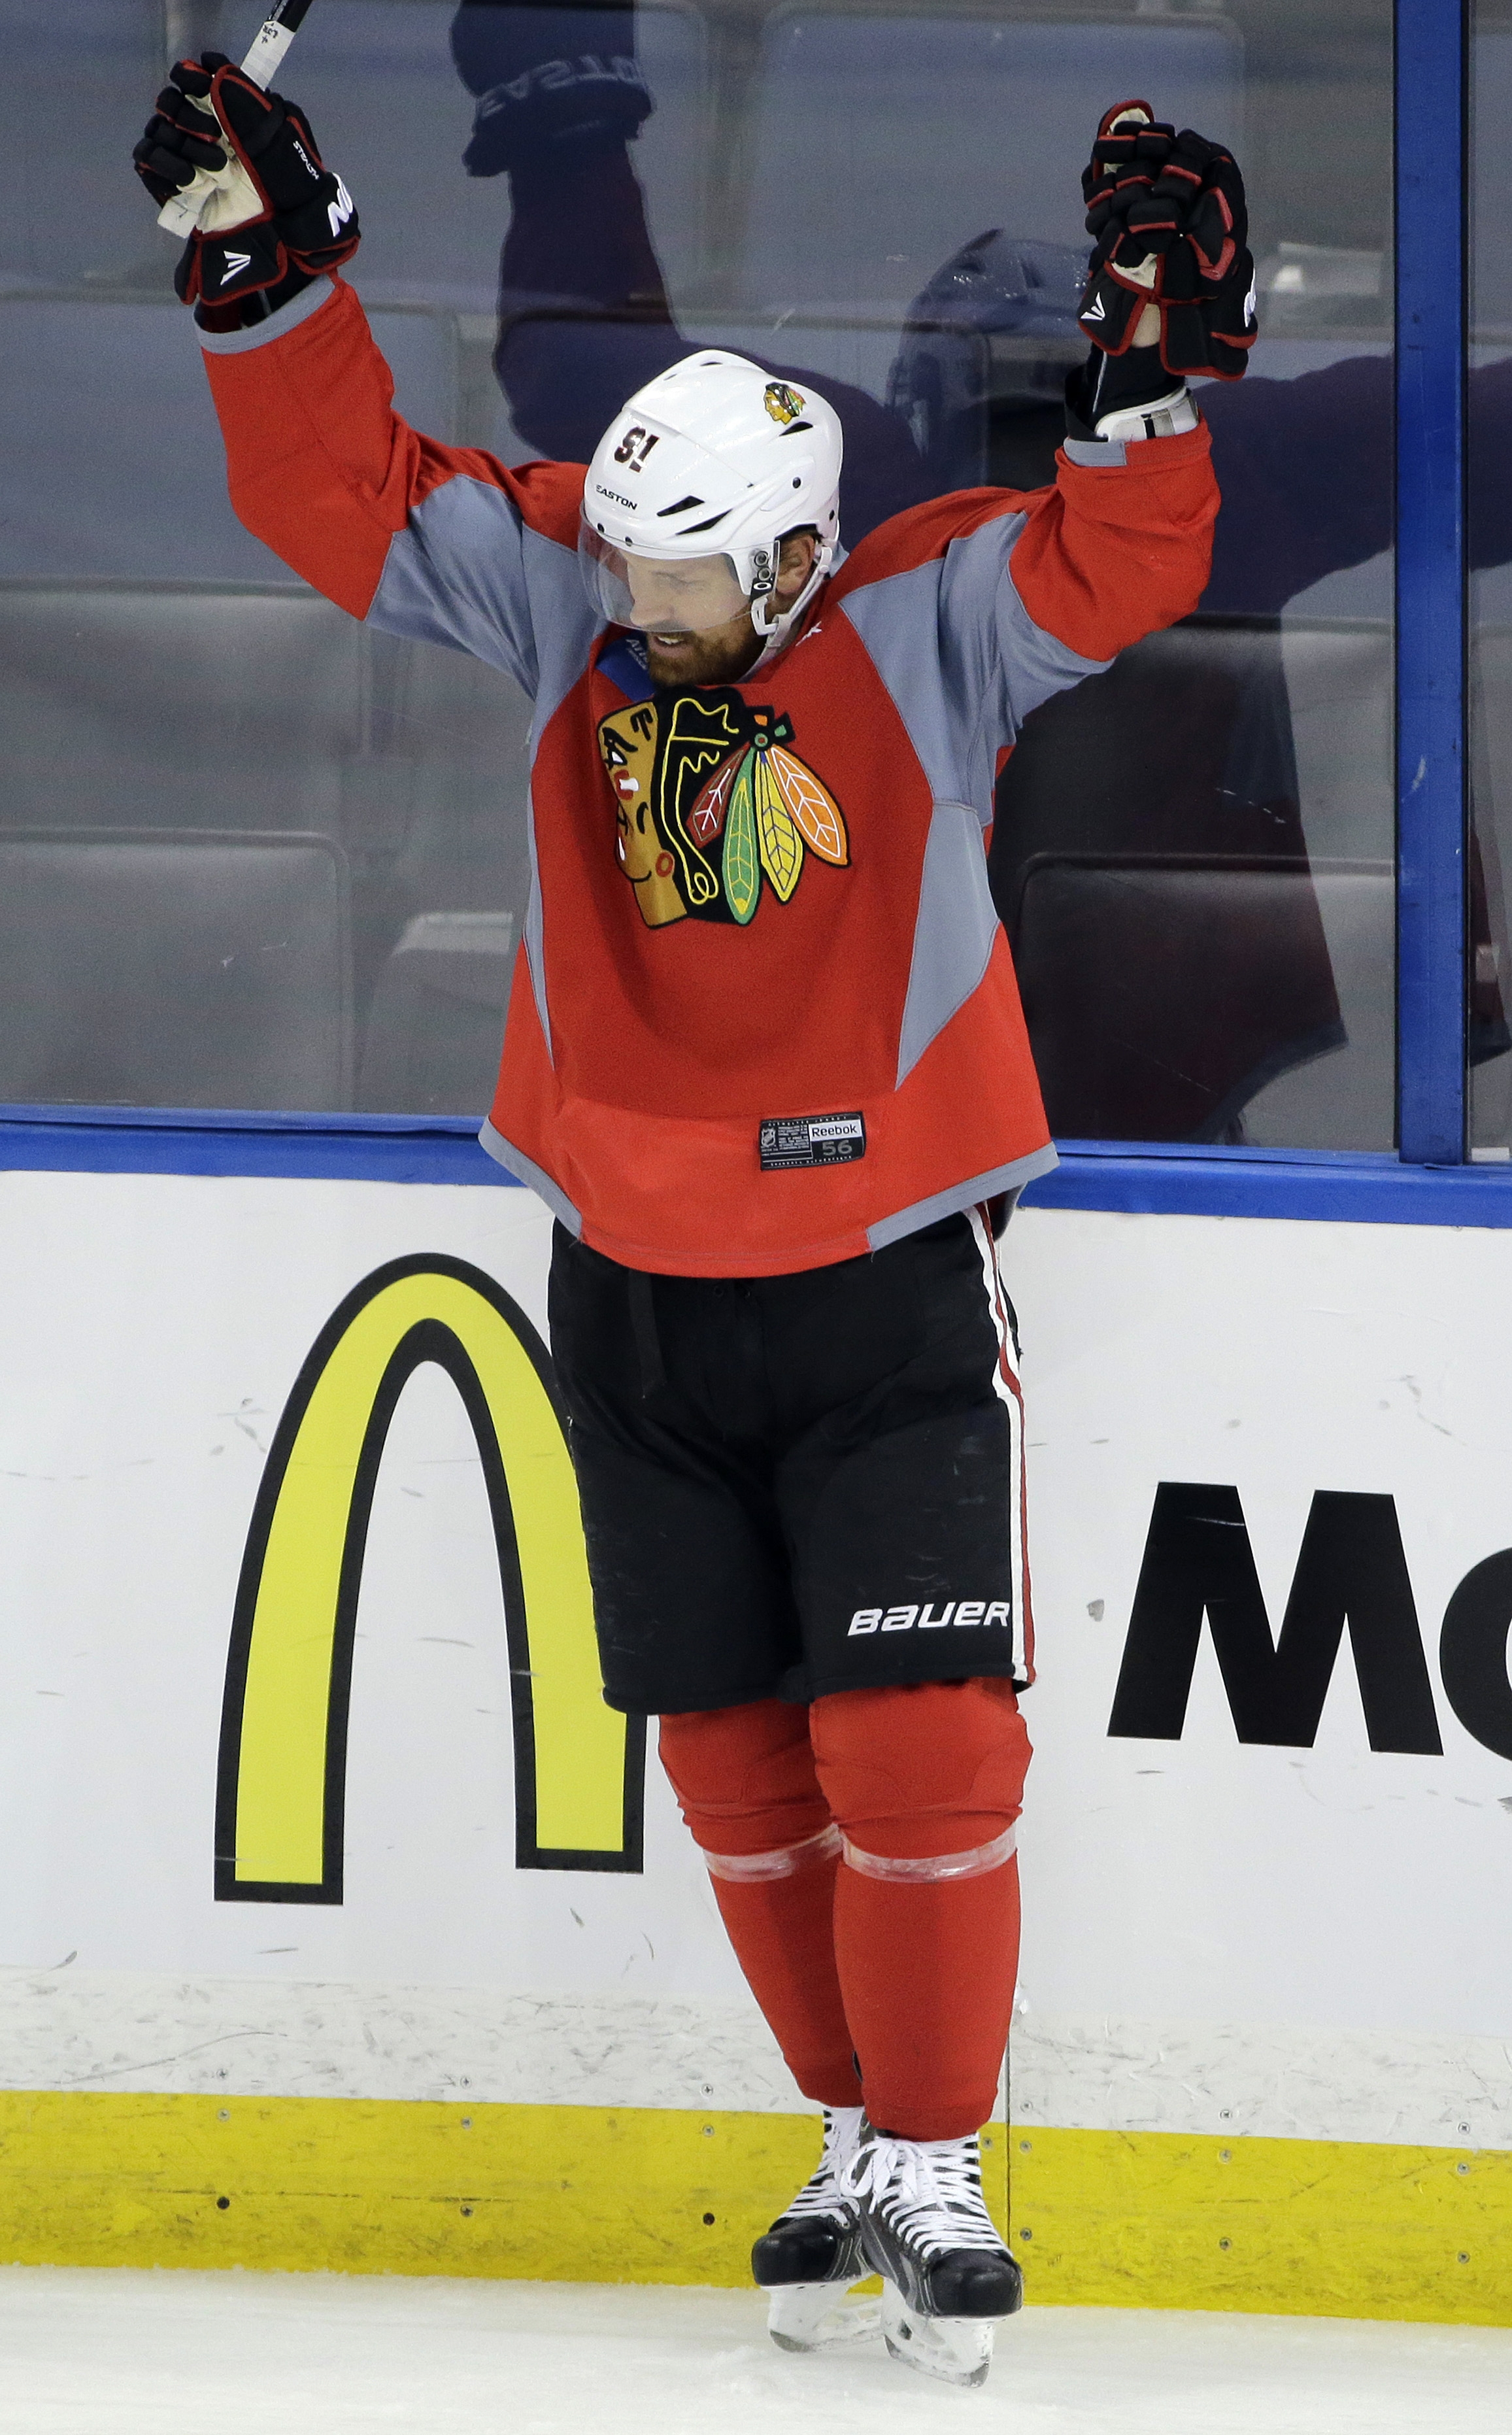 Chicago Blackhawks center Brad Richards celebrates after scoring during NHL hockey practice for the Stanley Cup Finals, Tuesday, June 2, 2015, in Tampa, Fla. The Blackhawks take on the Tampa Bay Lightning in Game 1 on Wednesday.  (AP Photo/Chris O'Meara)